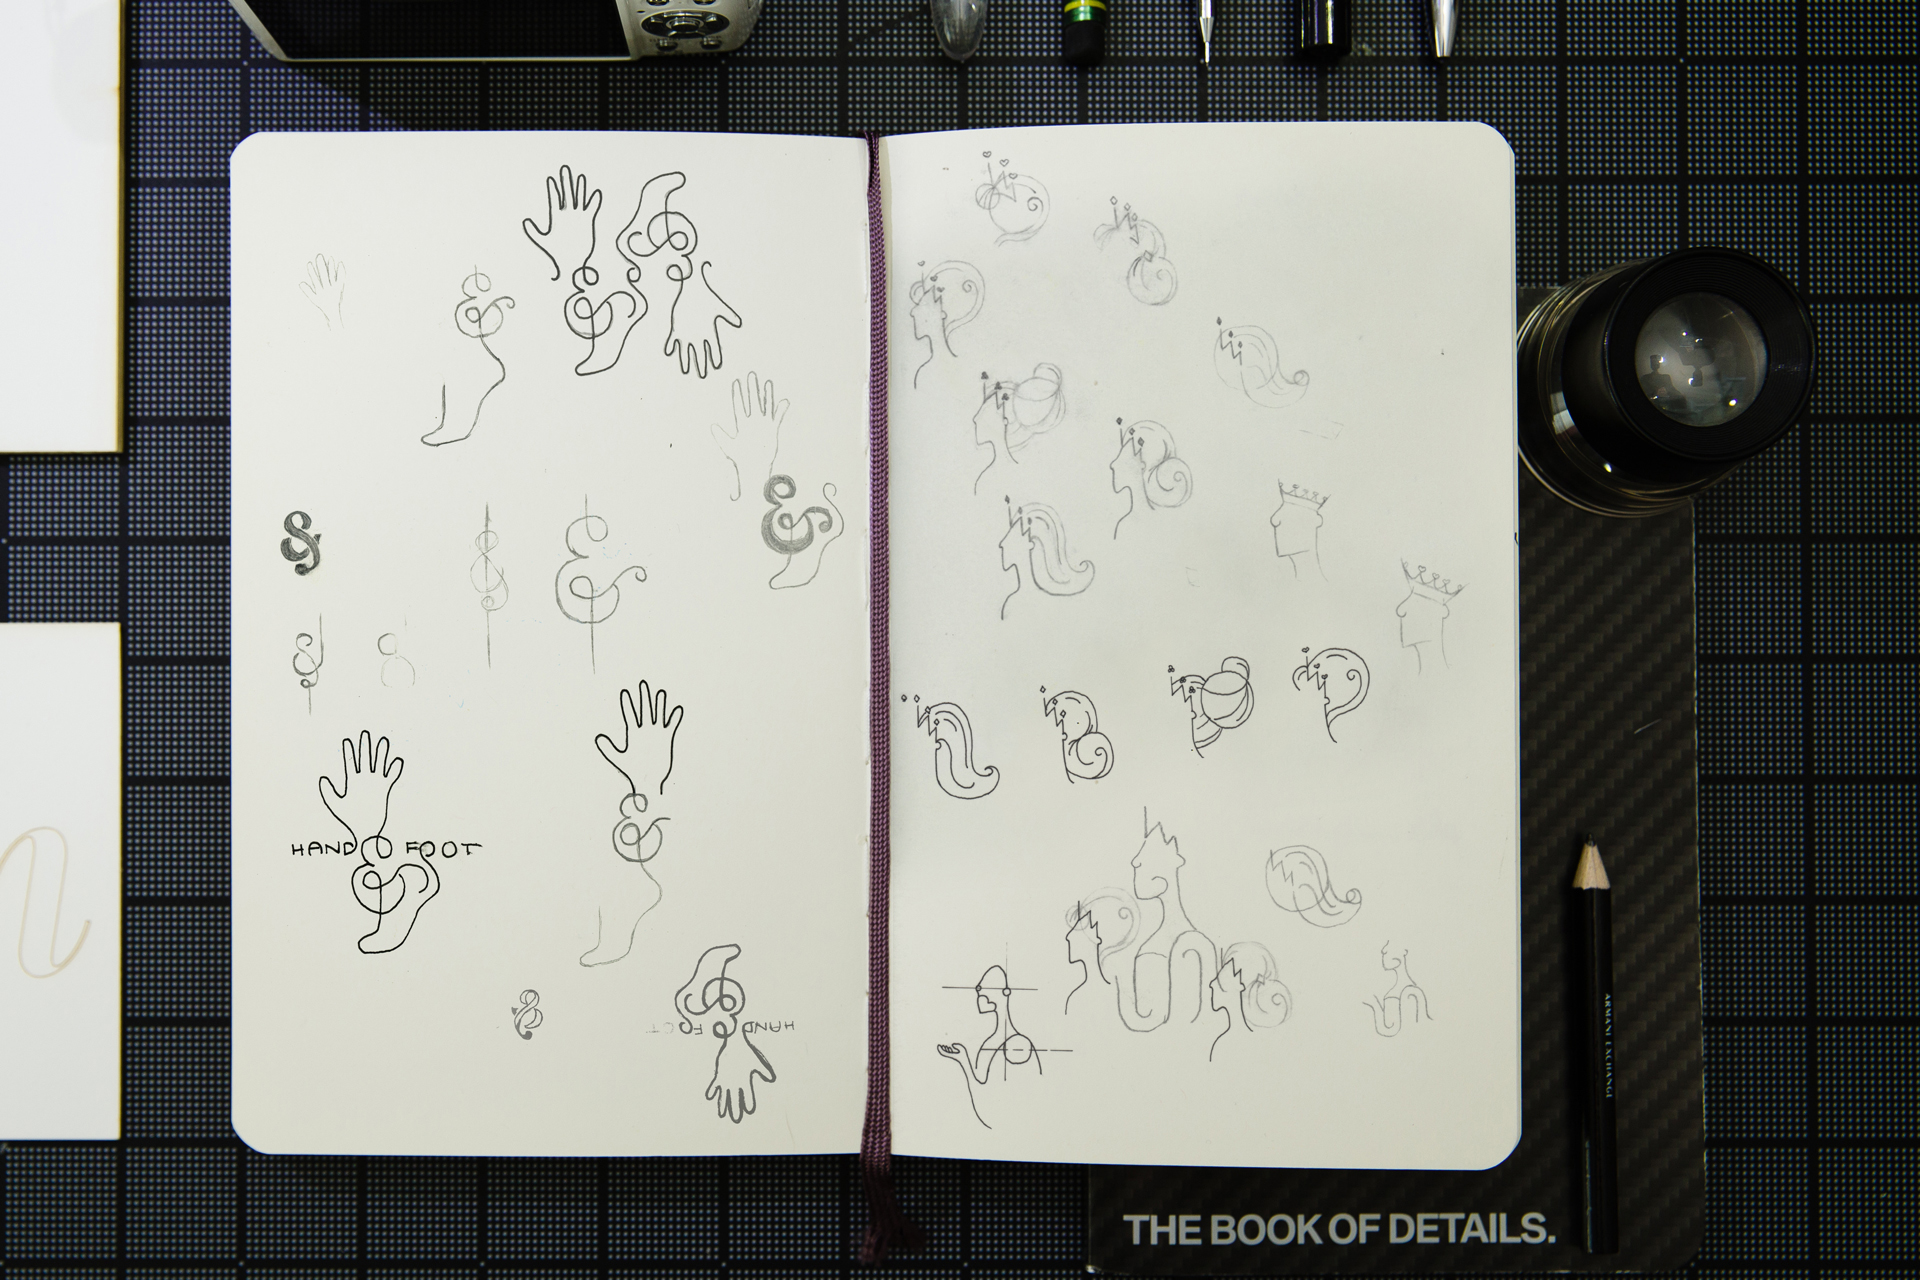 Sketchbook featuring logo concept sketches